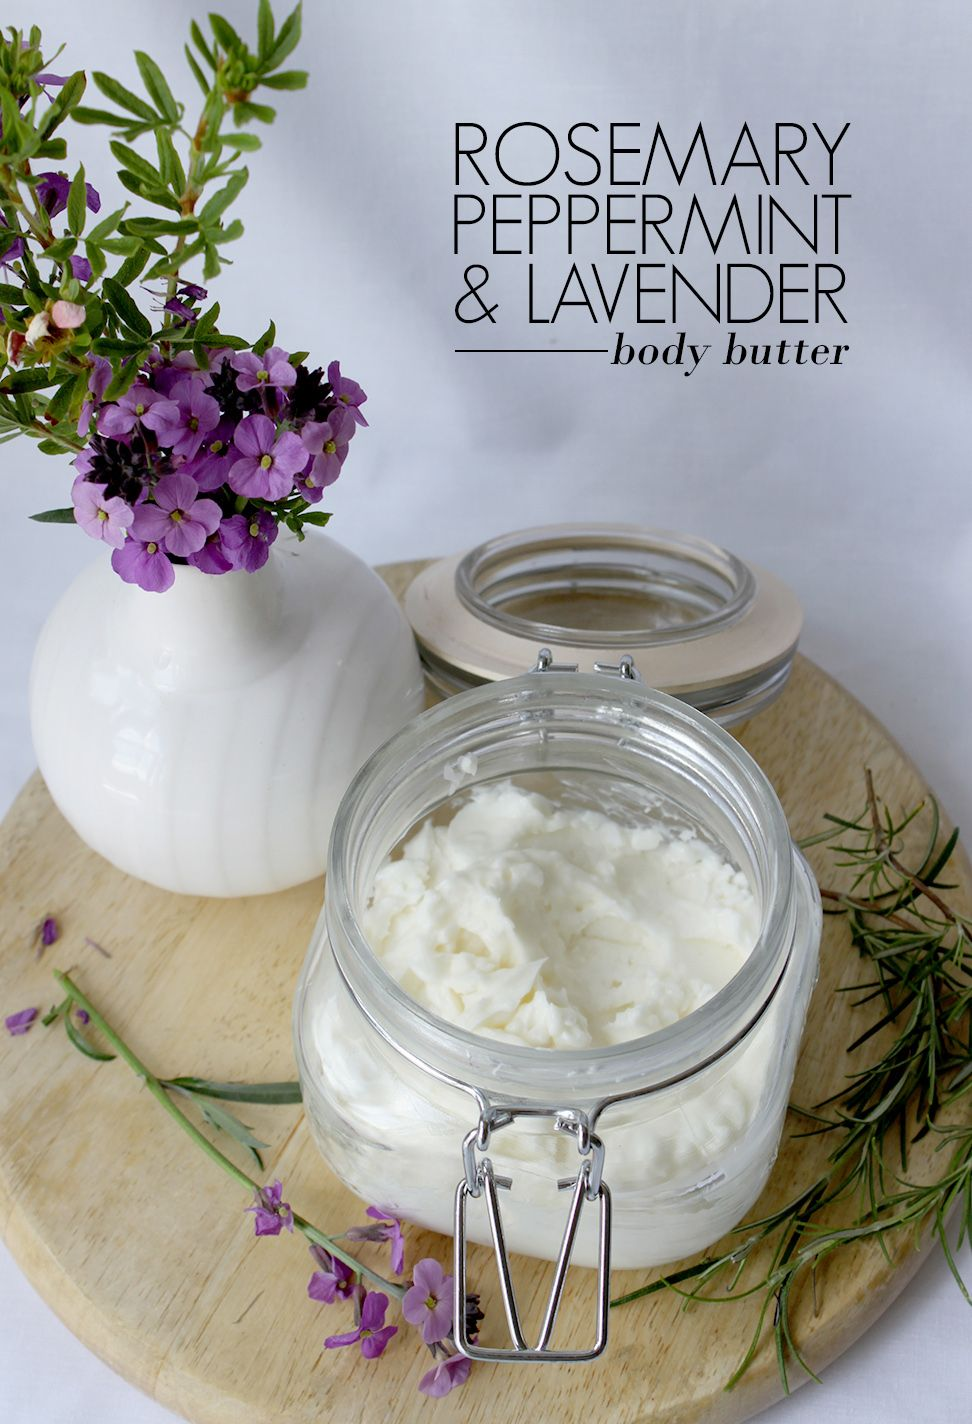 Make Your Own Rosemary Peppermint and Lavender Body Butter